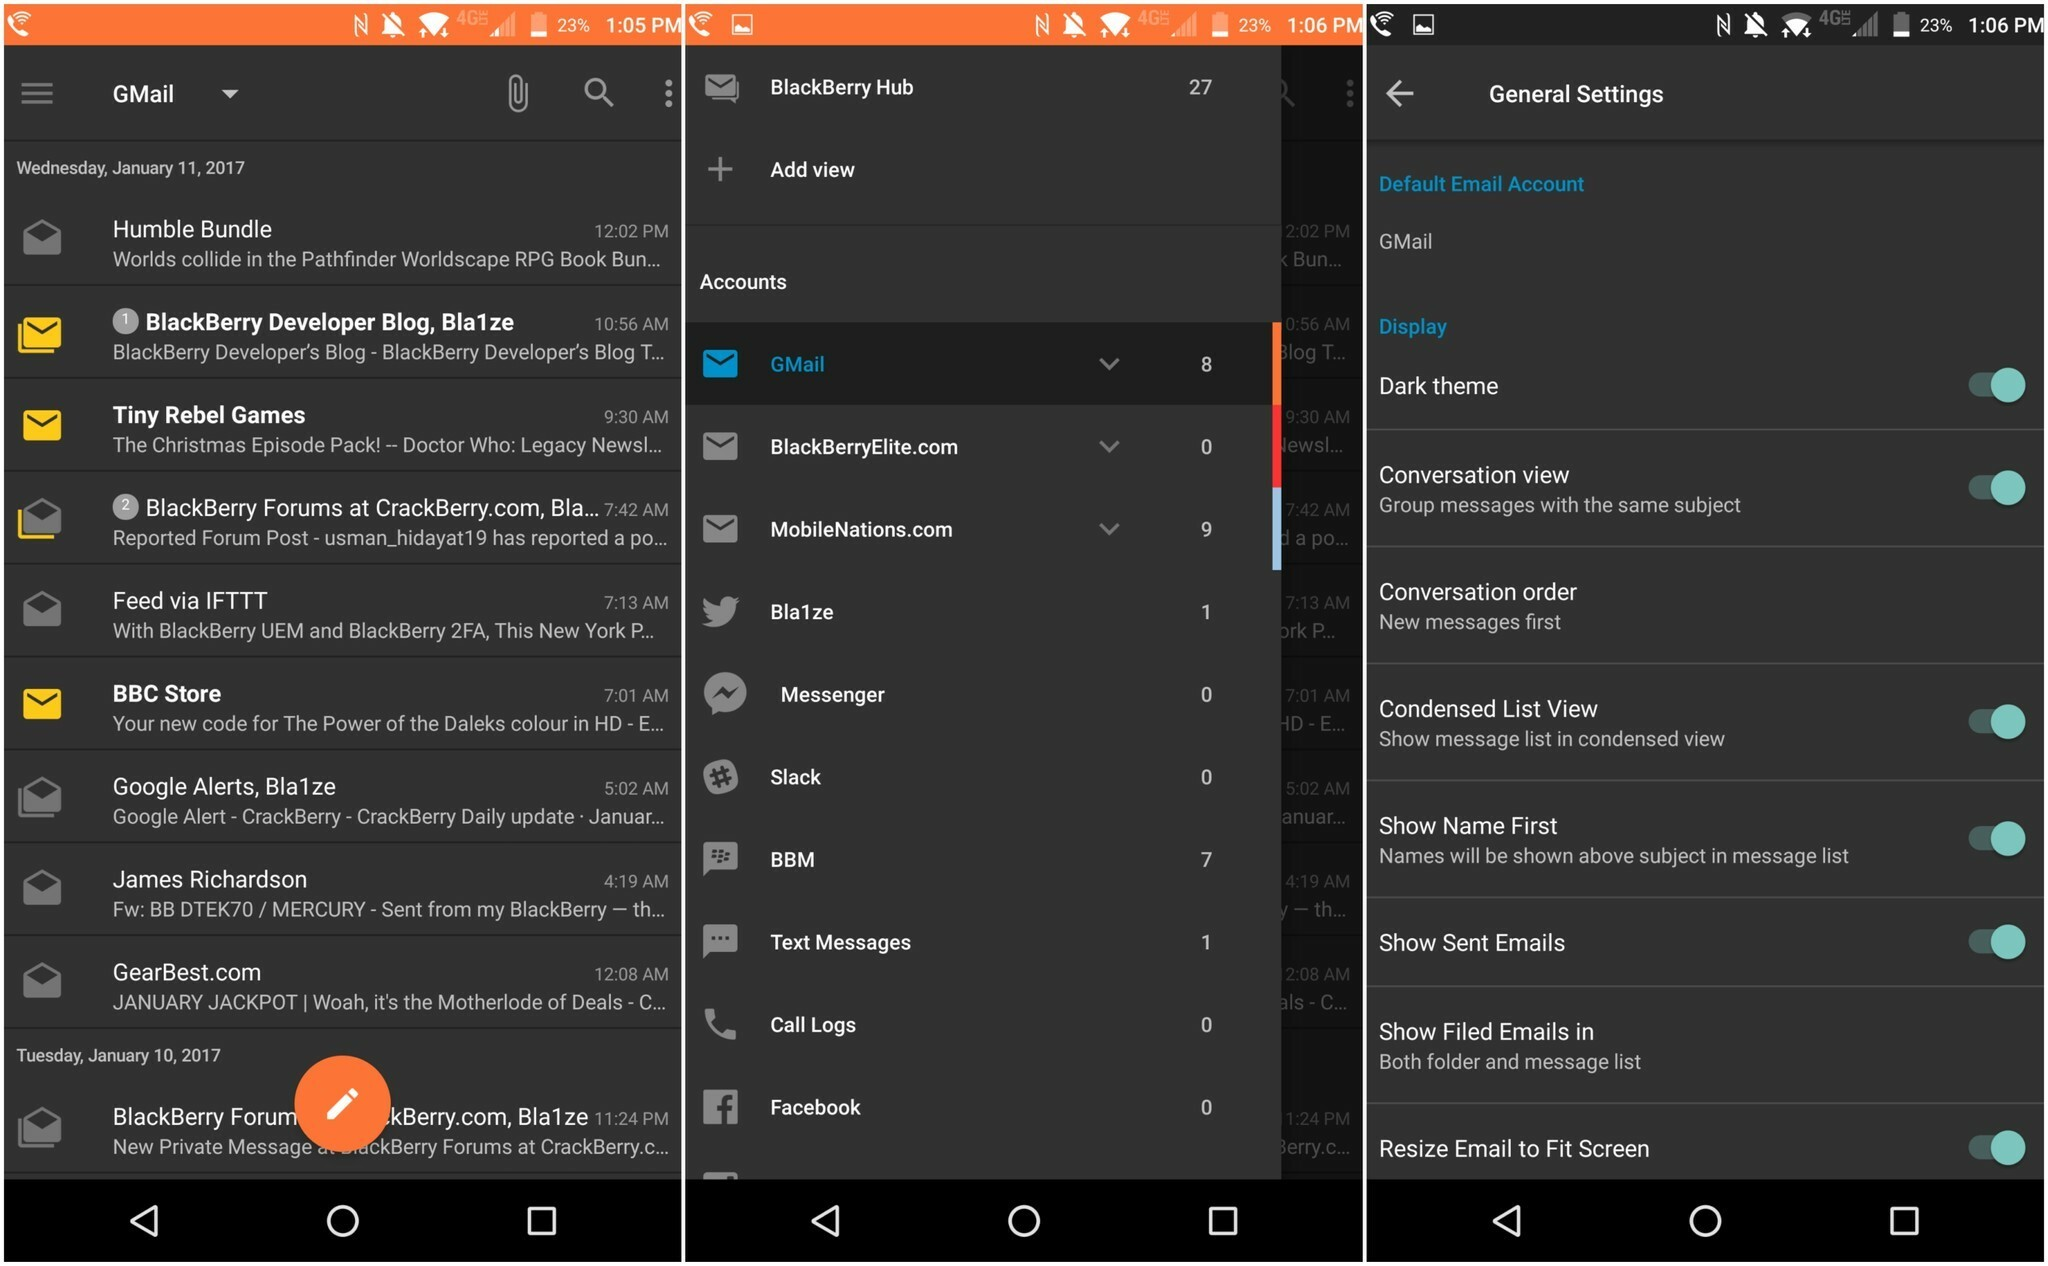 How to enable 'Dark Theme' for the BlackBerry Hub on Android